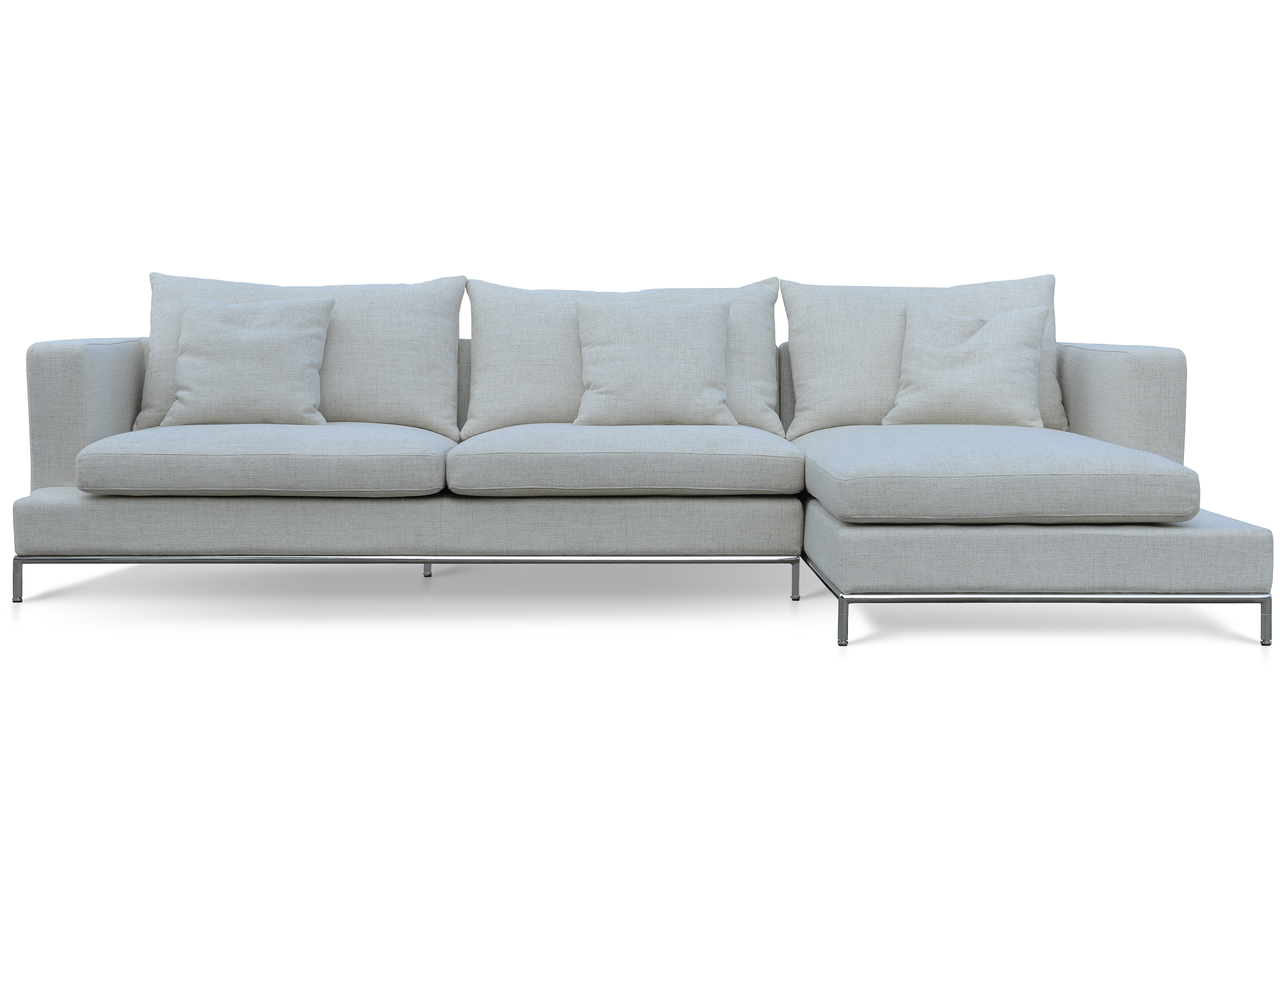 Soho Concept Simena Sectional Sofa CREAM TWEED